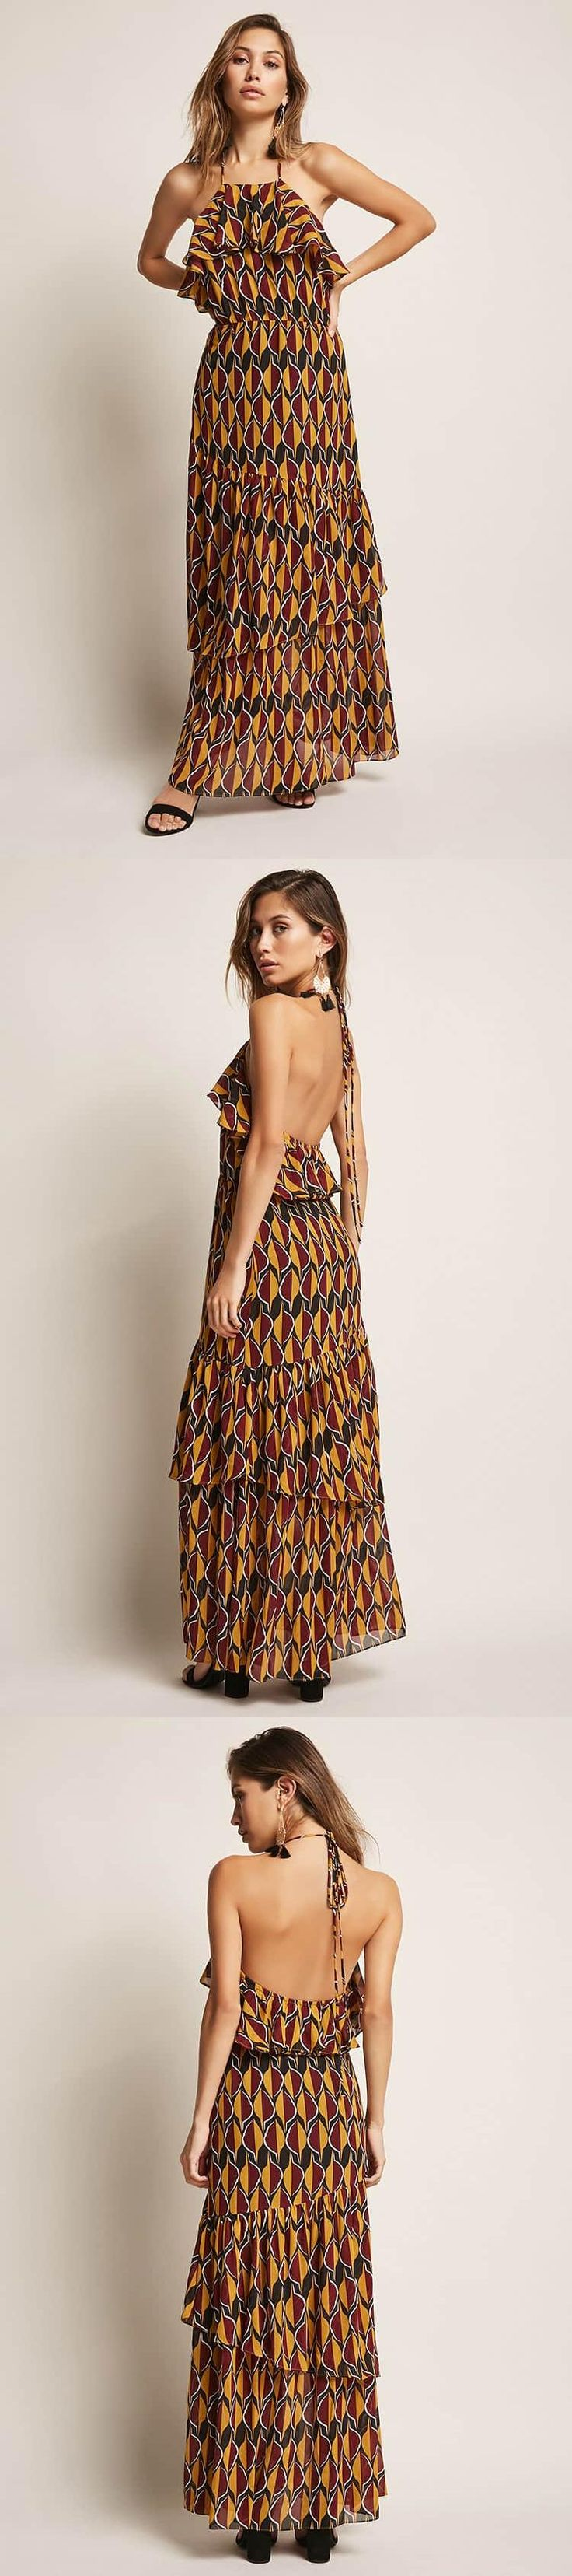 Halter Maxi Dress // 58.00 USD // Forever 21